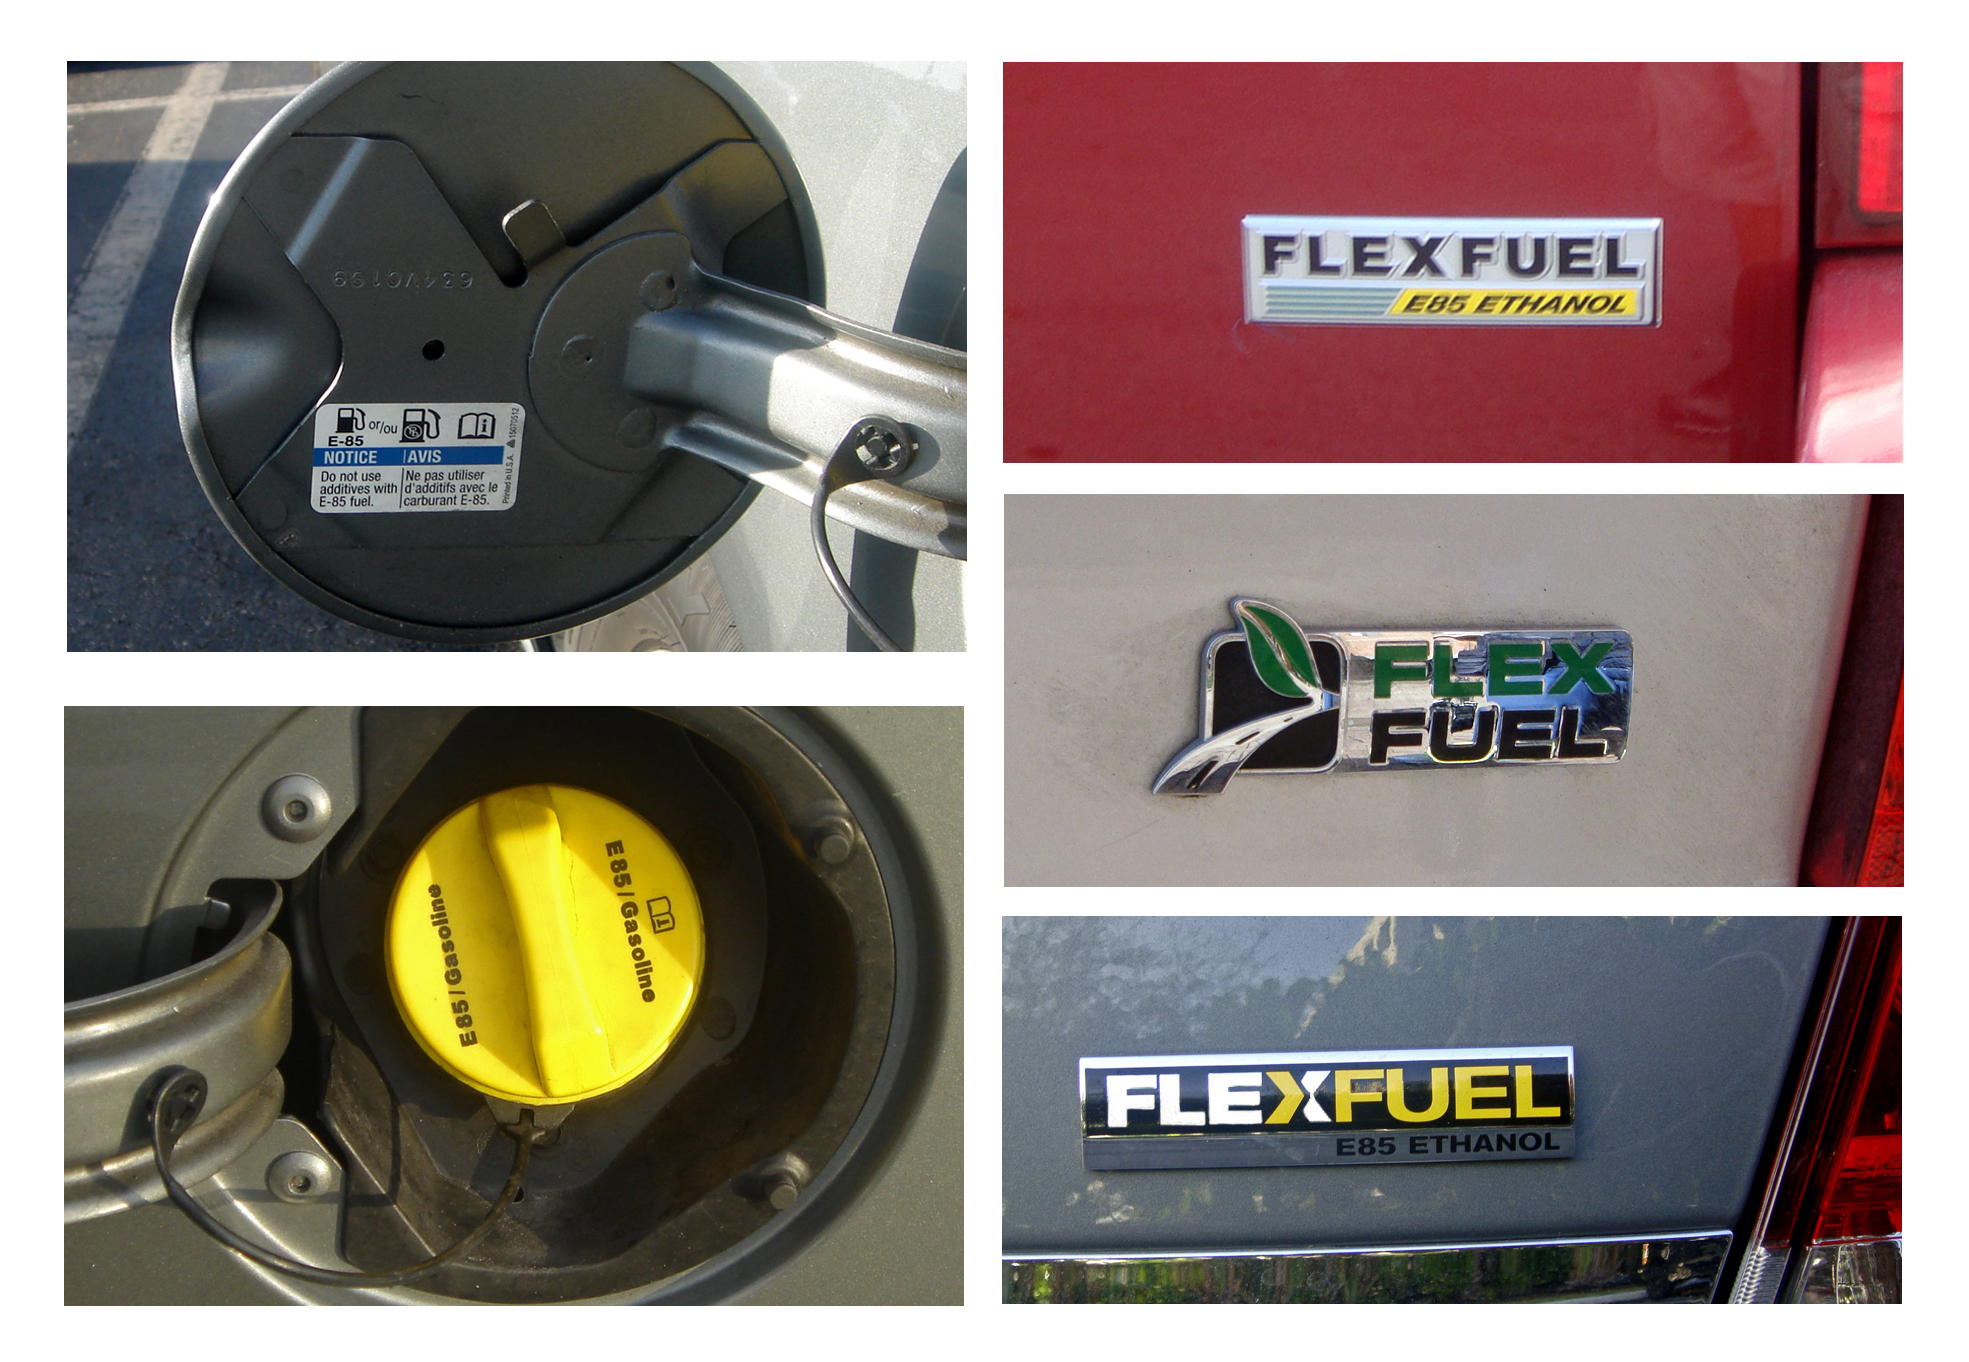 What is flex fuel illustrated